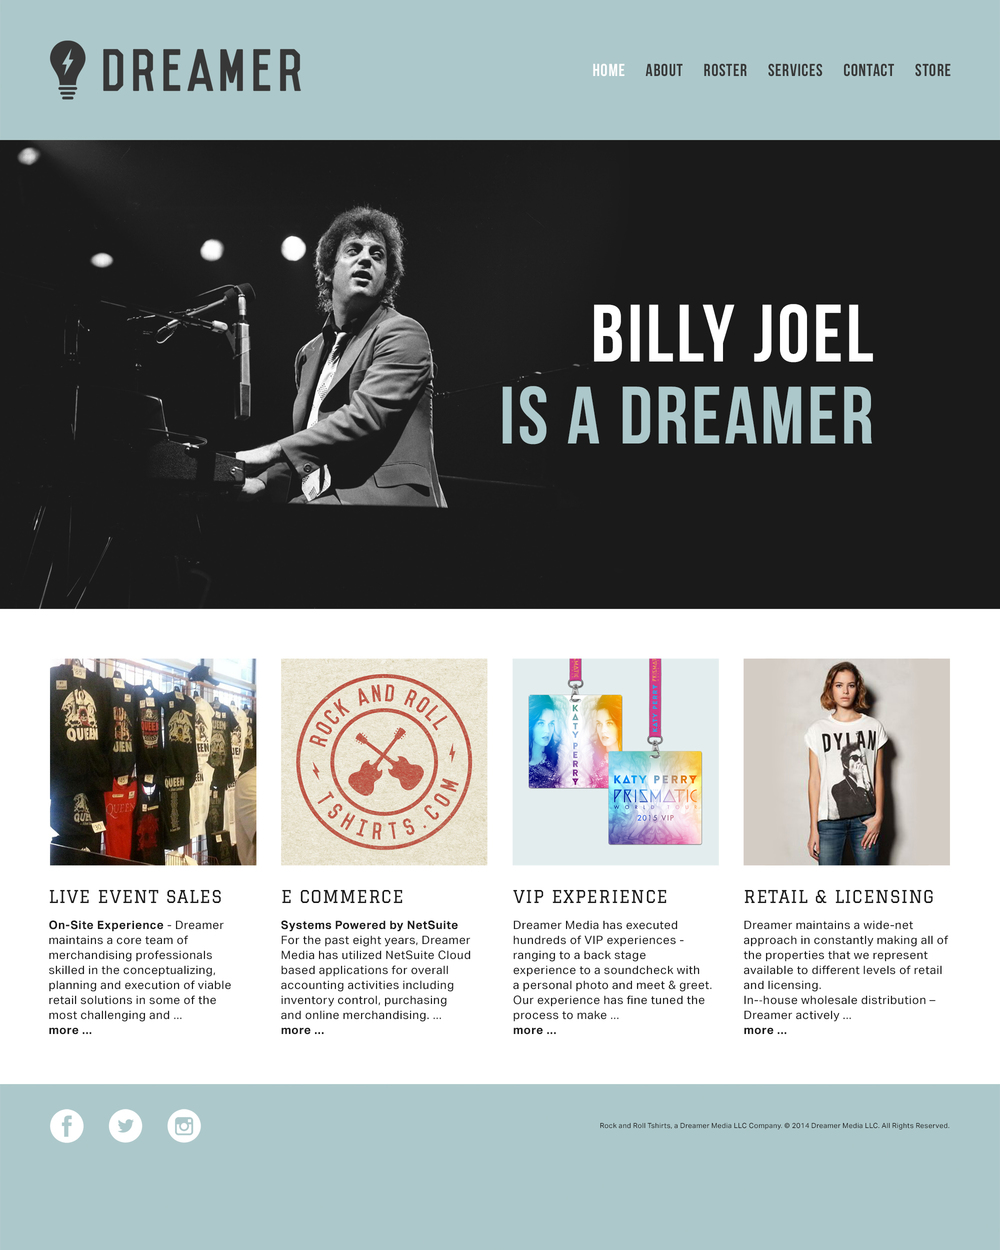 HEADER: BILLY JOEL